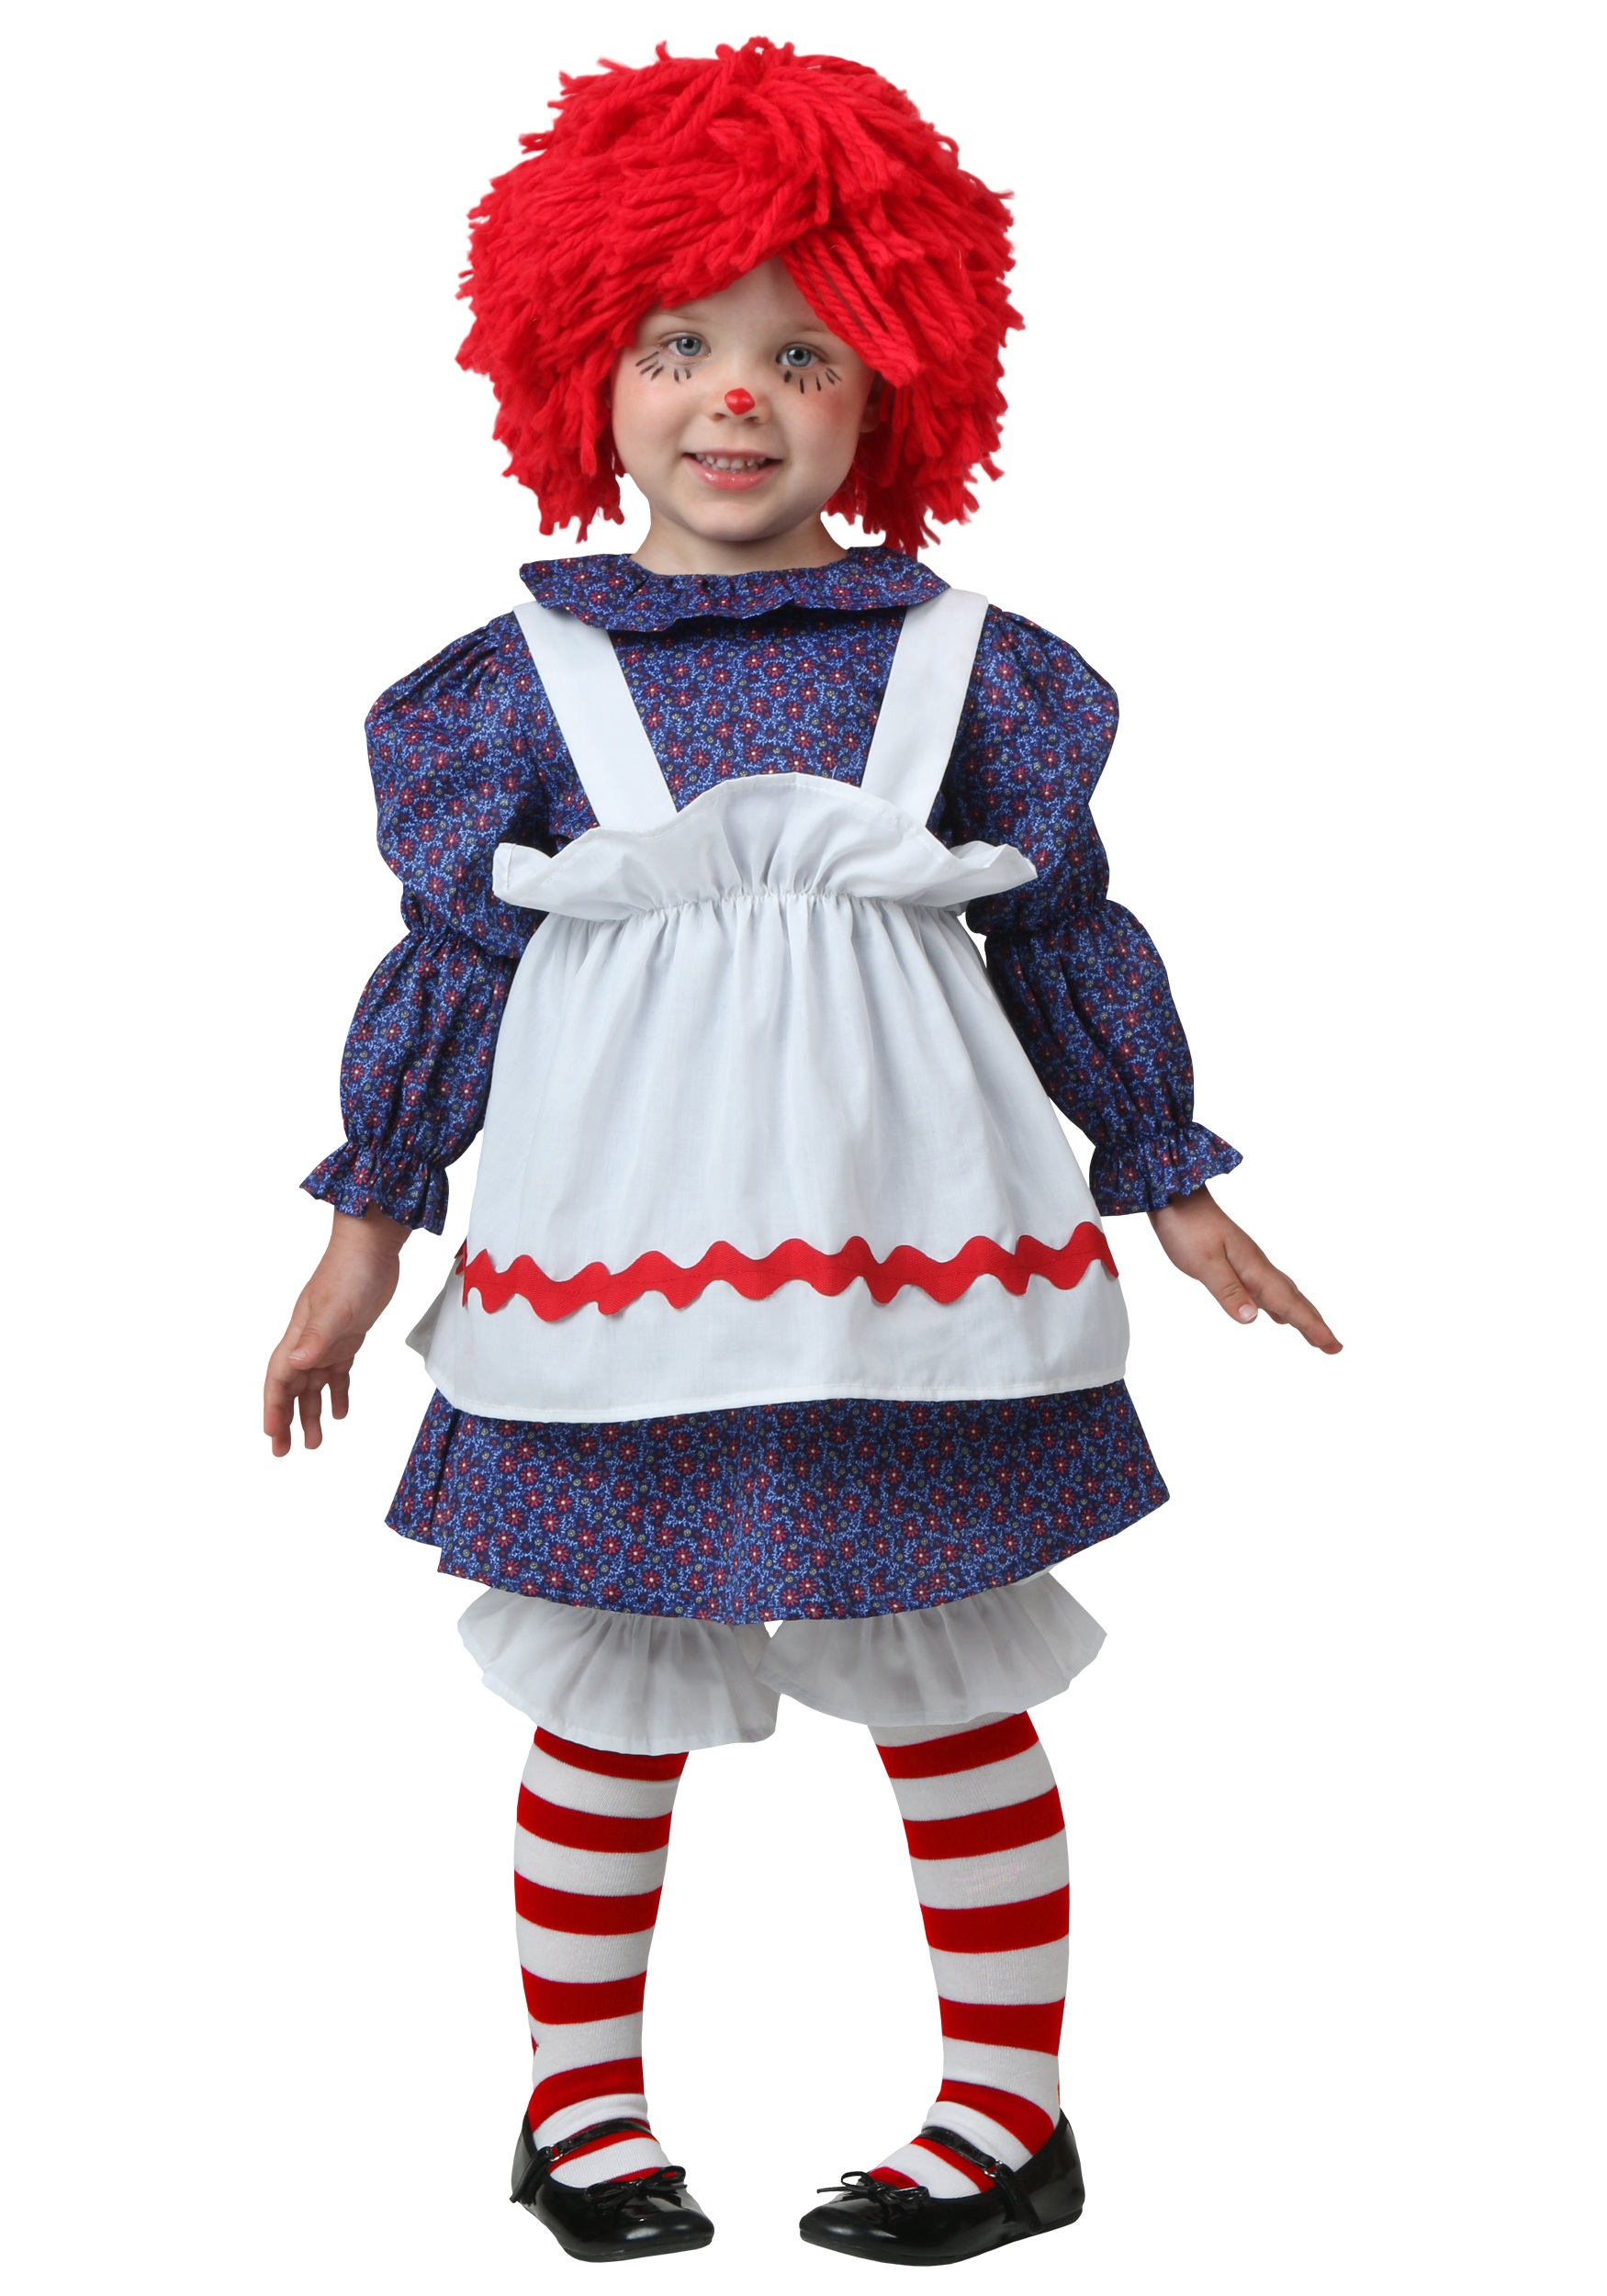 Costume Rag Doll Small Adult Woman Raggedy Ann 5 pc